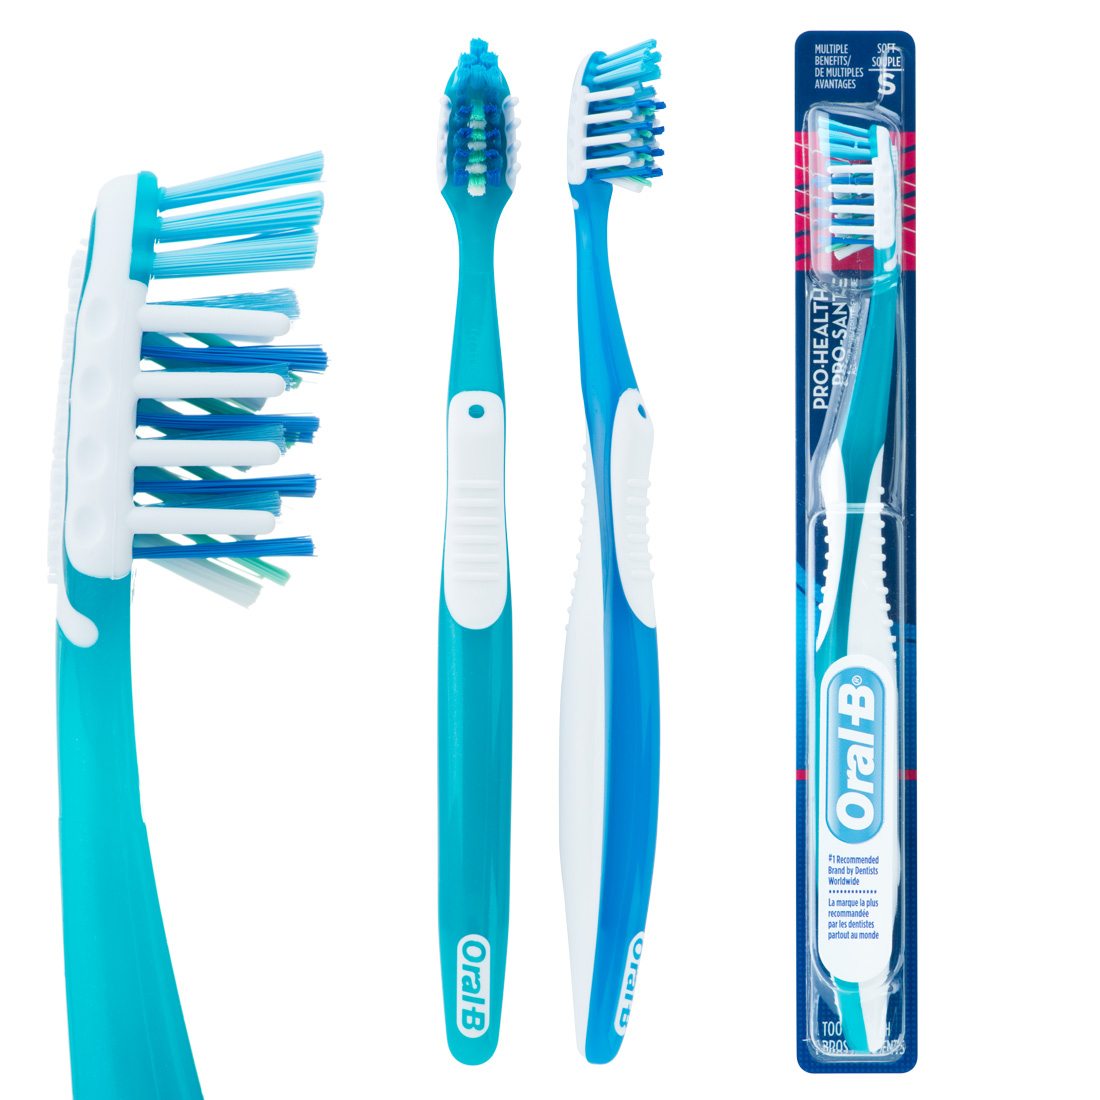 Oral-B Toothbrushes